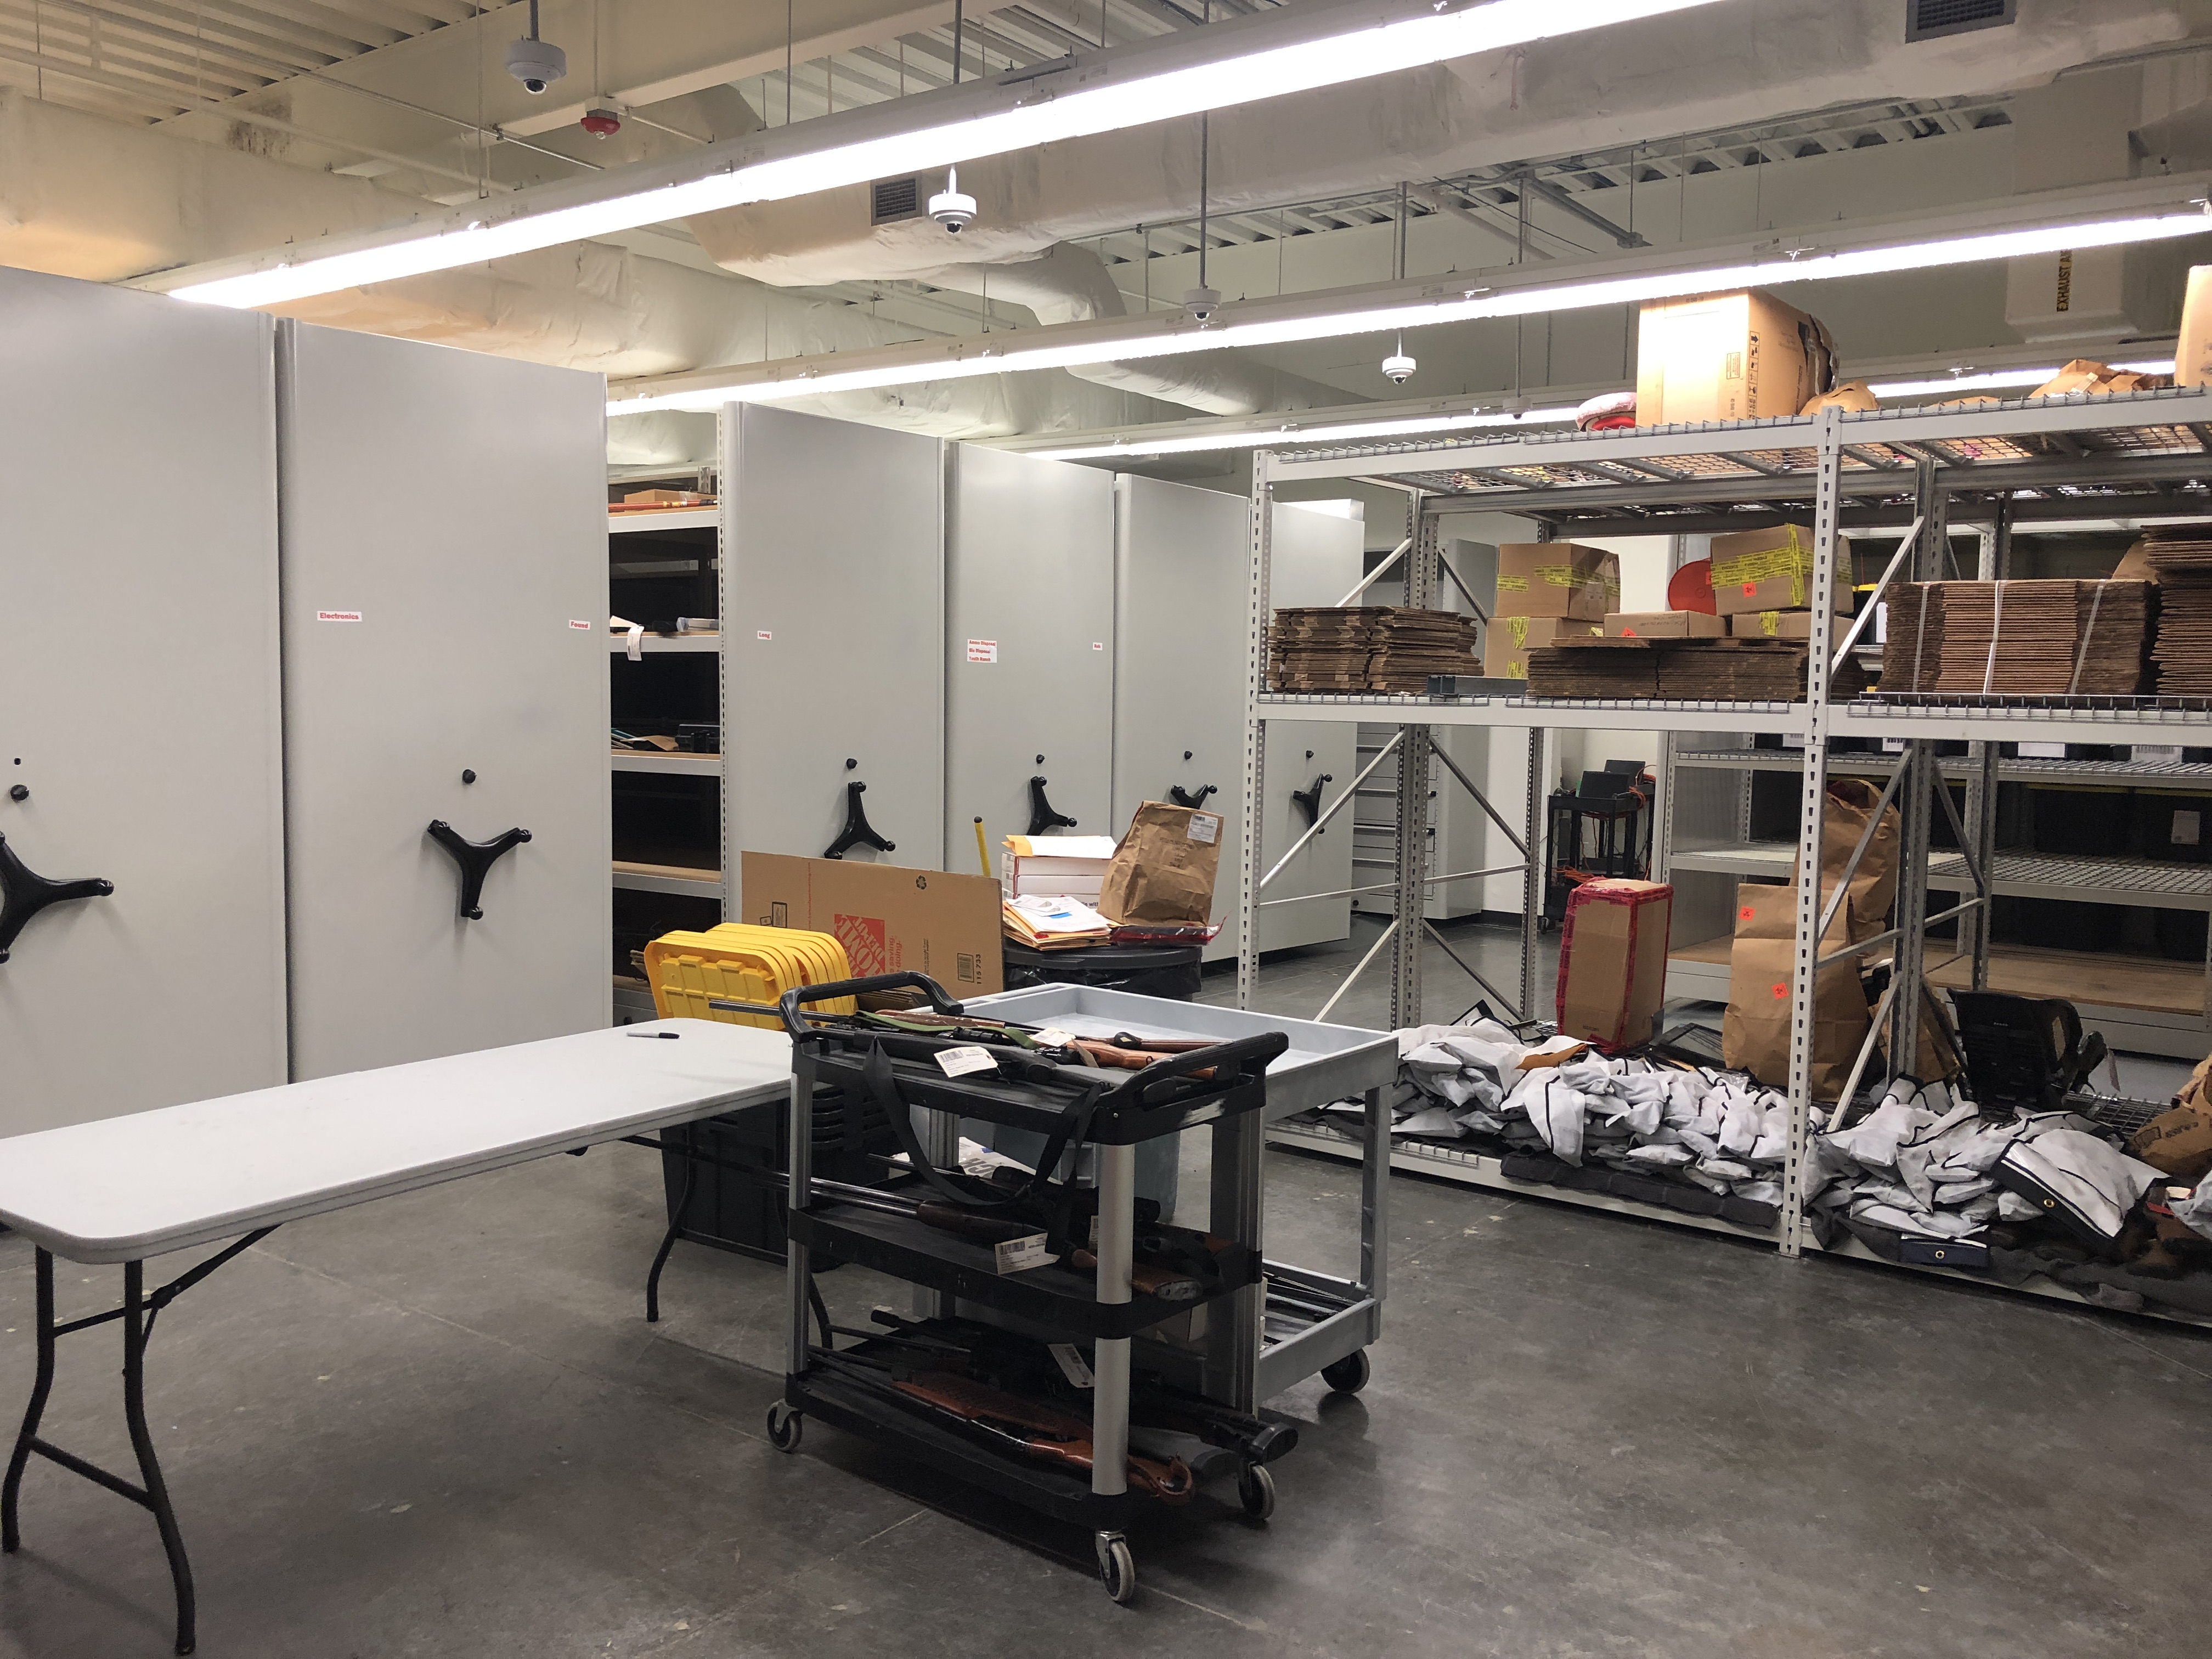 Sheriff's Office evidence storage facility